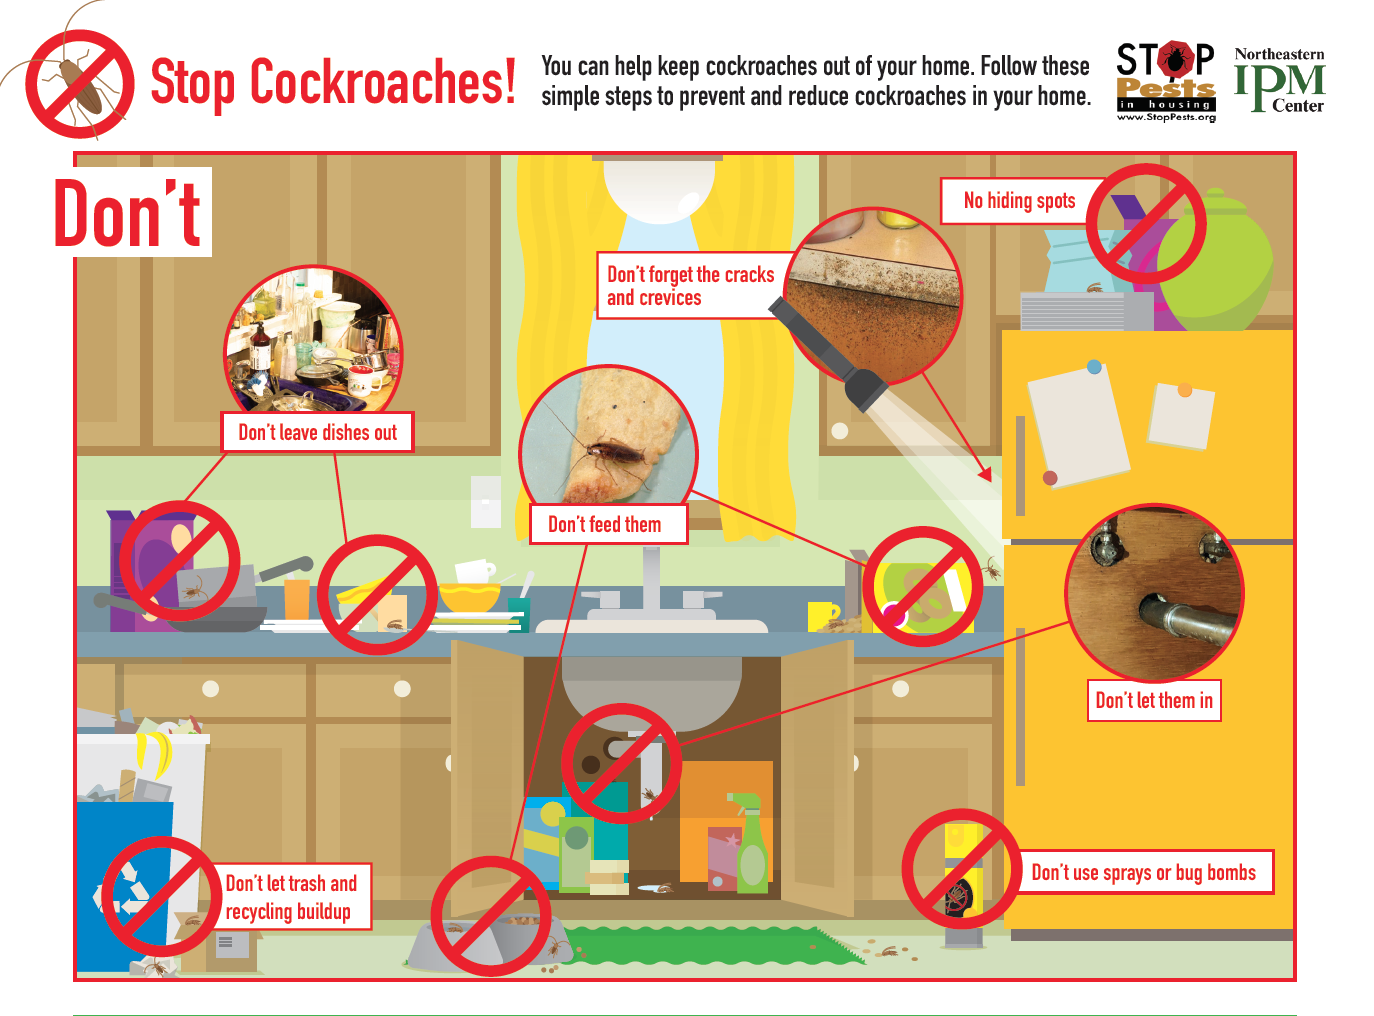 a guide with pictures shows what you should not do when treventing and controlling cockroaches.